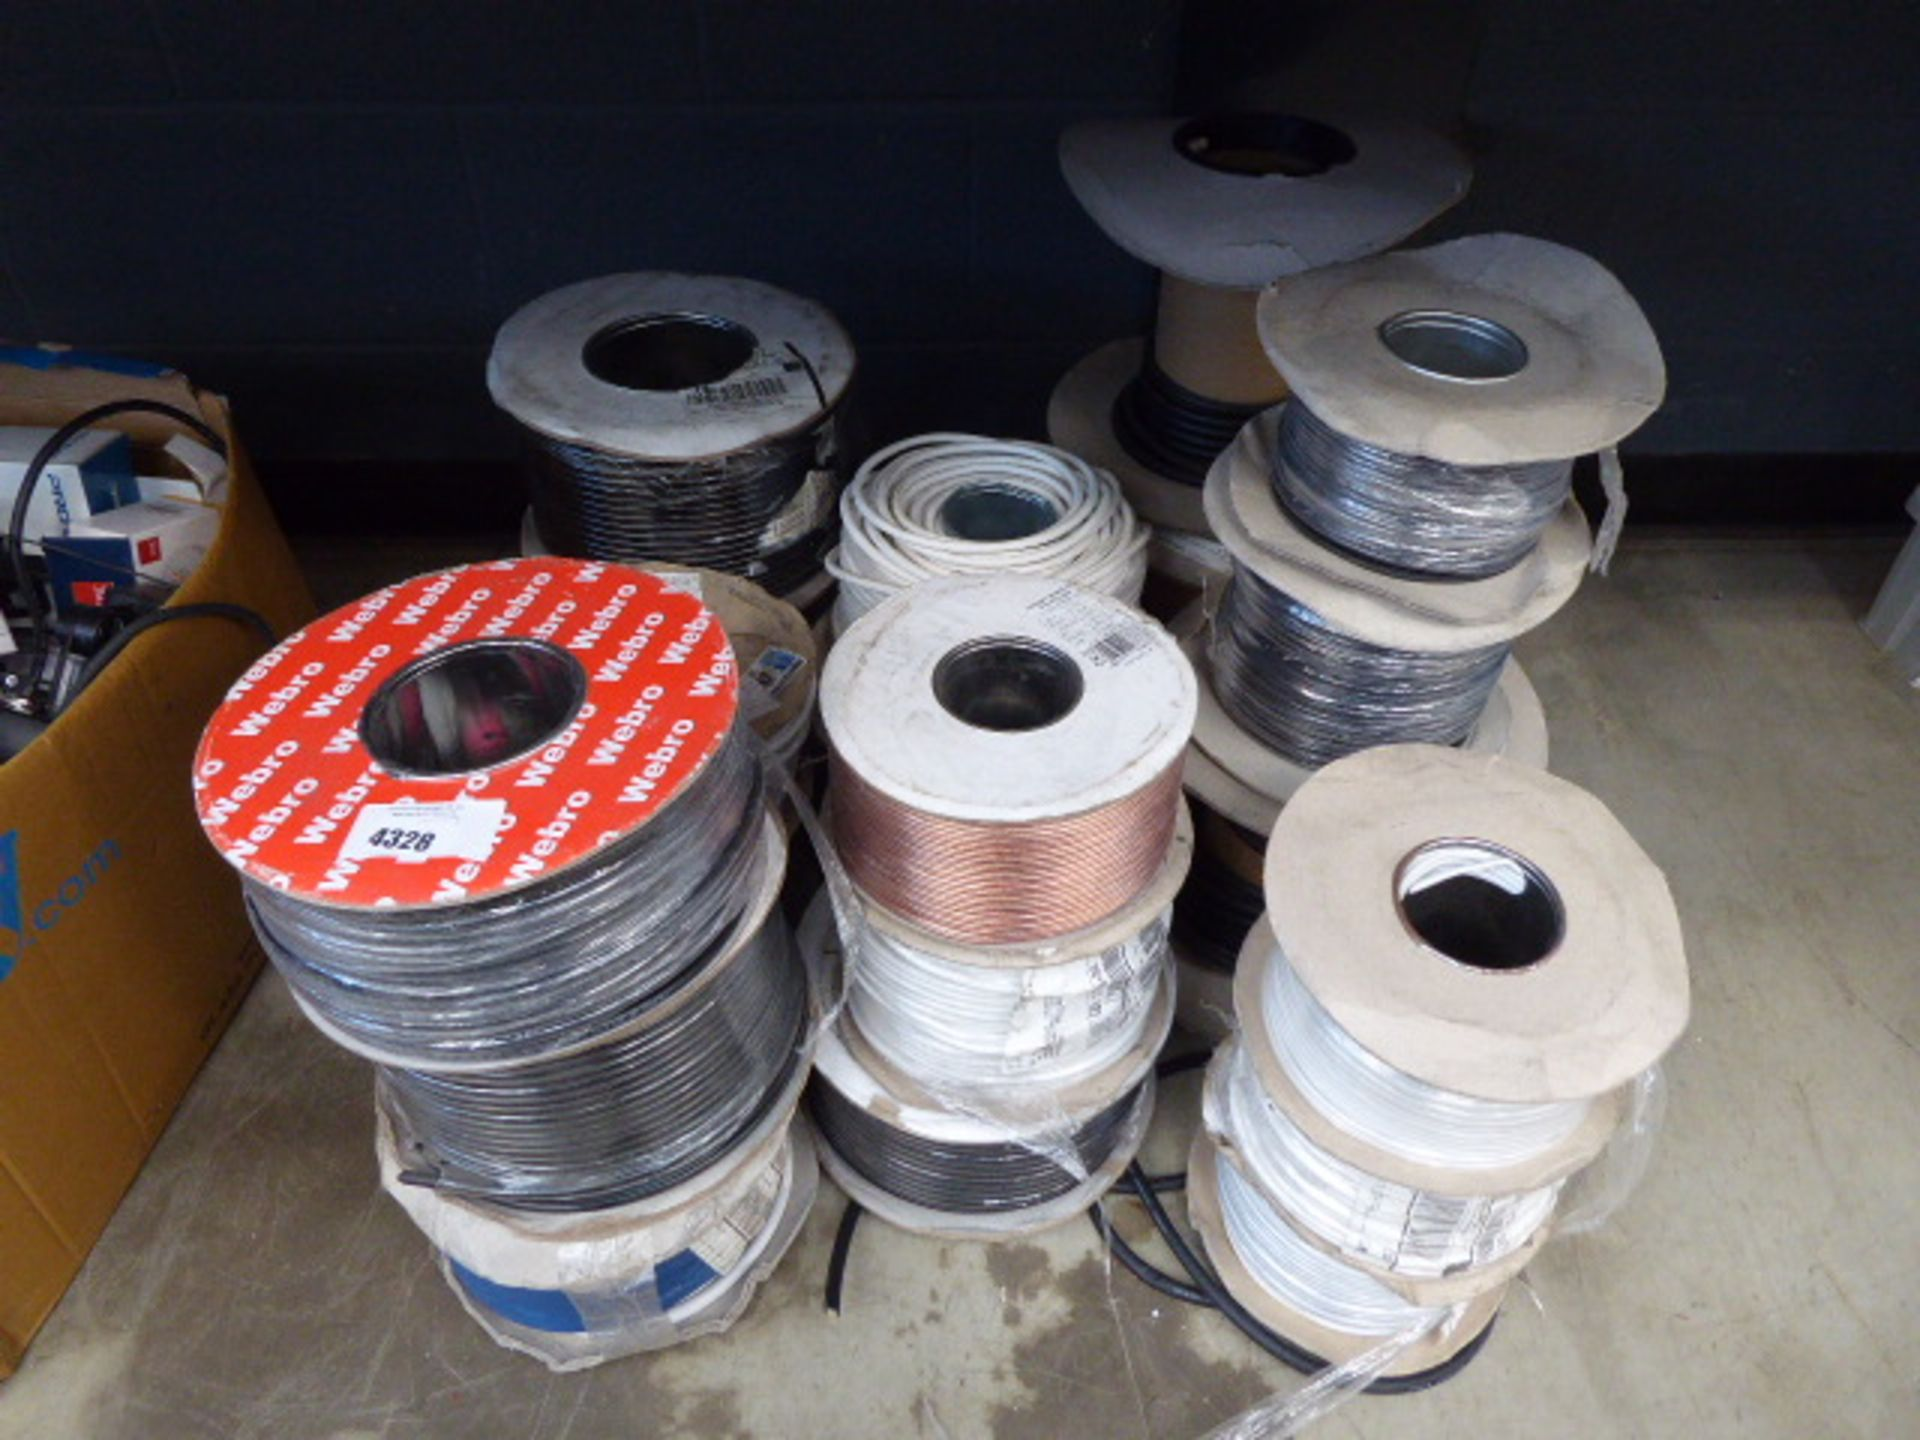 Approx 19 rolls of assorted cable